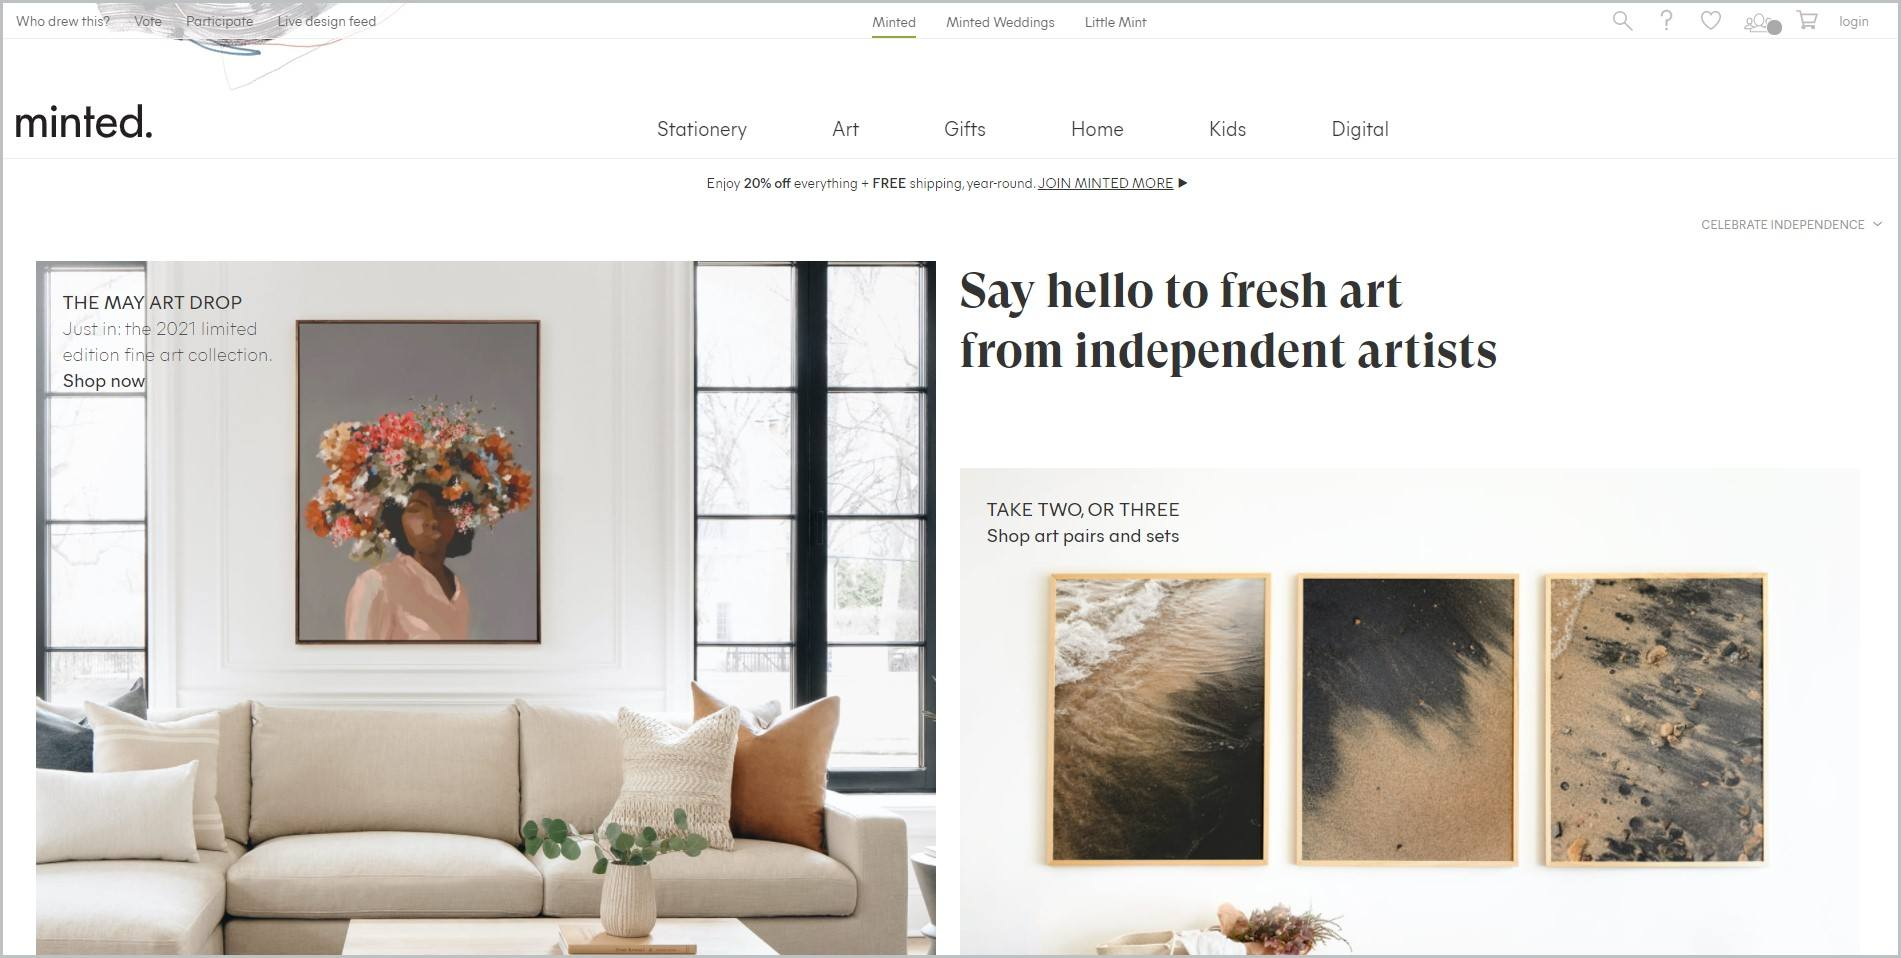 screenshot of Minted homepage with white header with the website's name and main navigation menu, it features an image of living room setup with fine art paintings